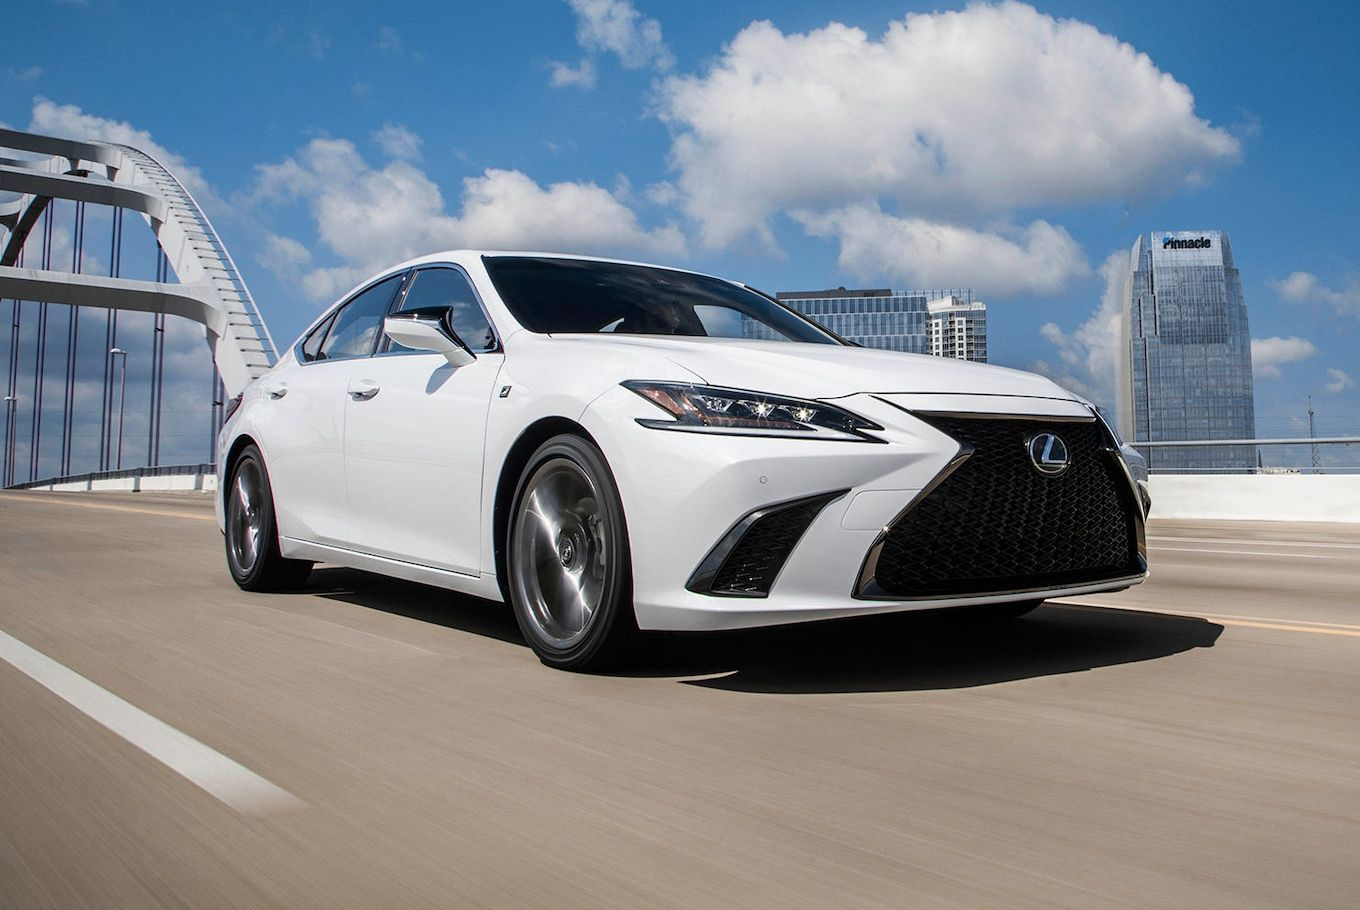 Colors Of 2020 Lexus Es 350 Speed Test Lexus es, Lexus